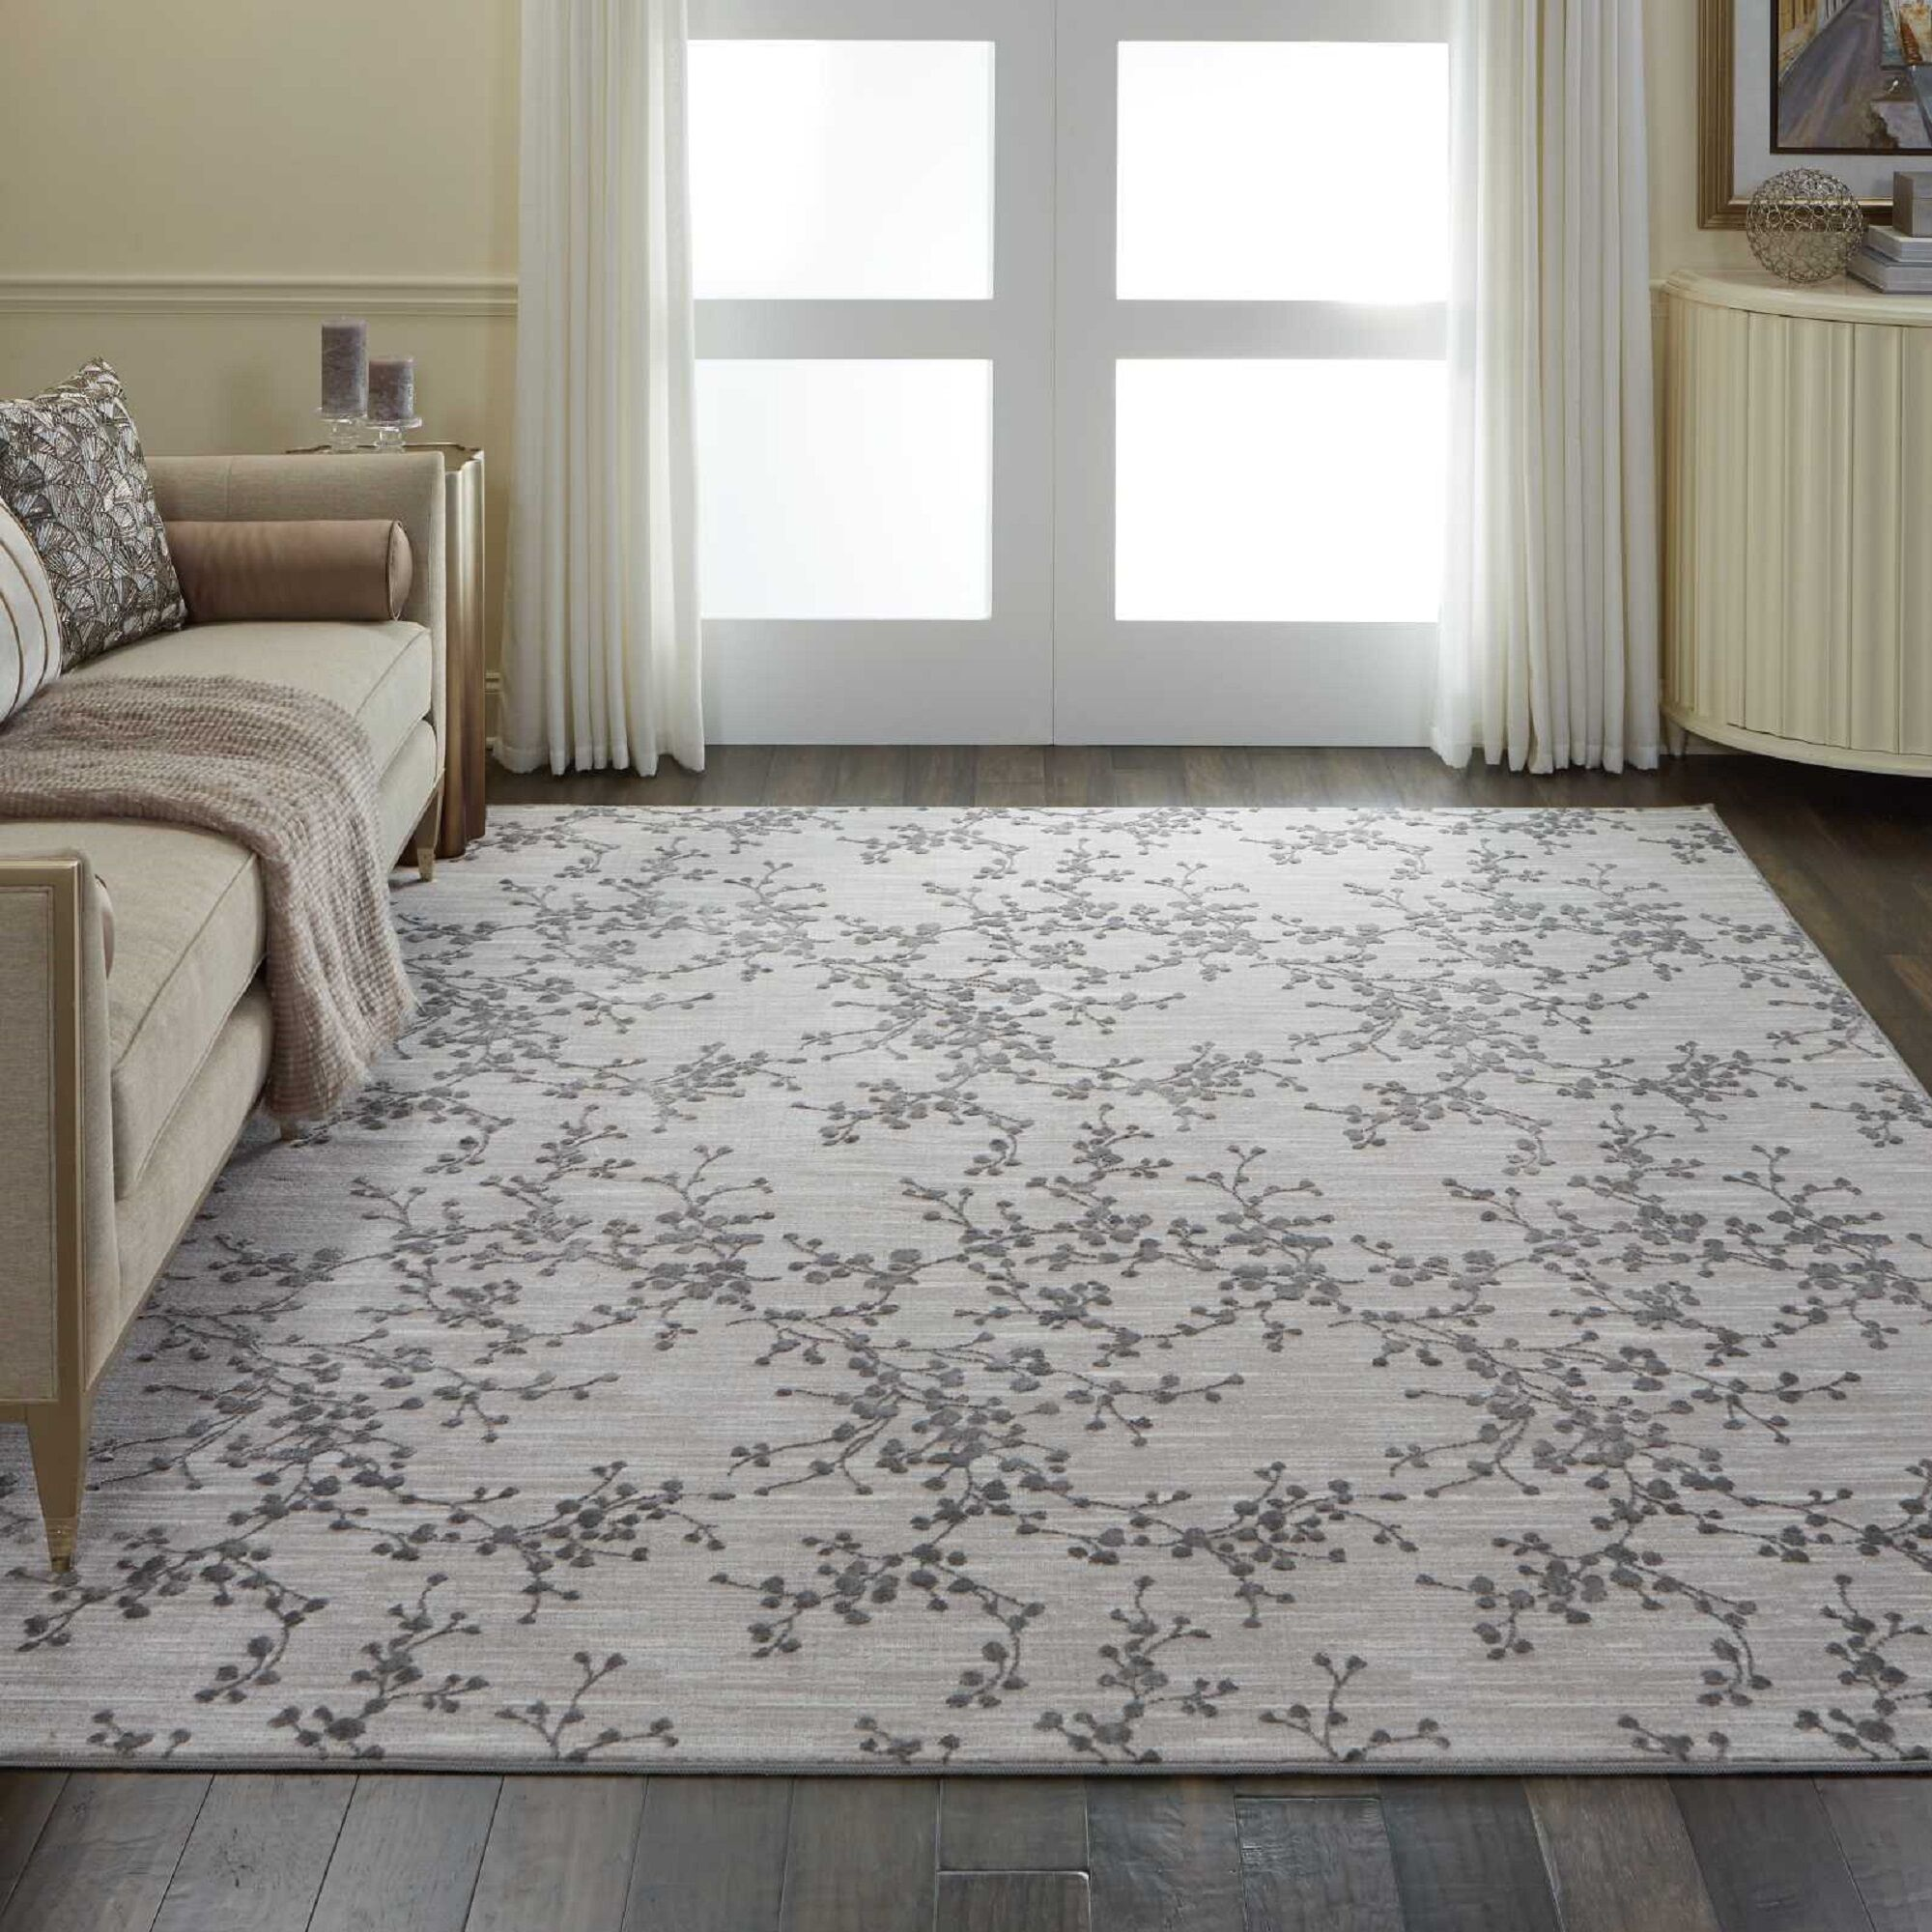 Burford Floral Gray Area Rug Rug Size: Rectangle 9' x 12'